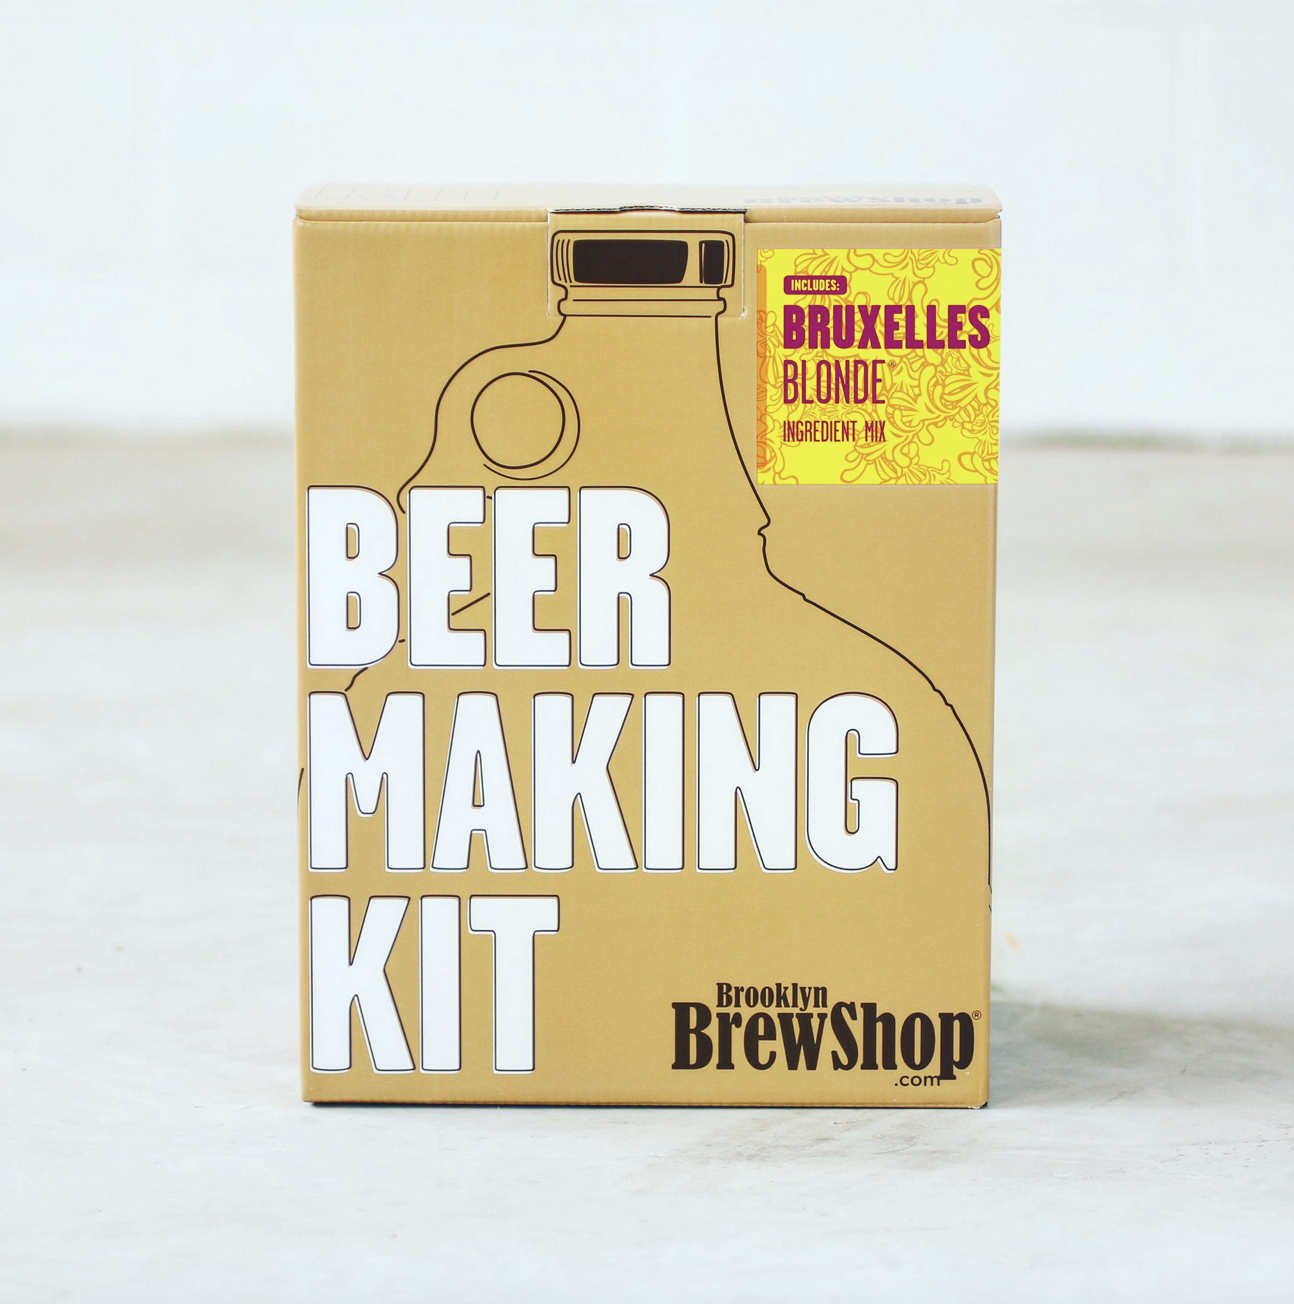 Brooklyn Brew Shop Bruxelles Blonde Kit